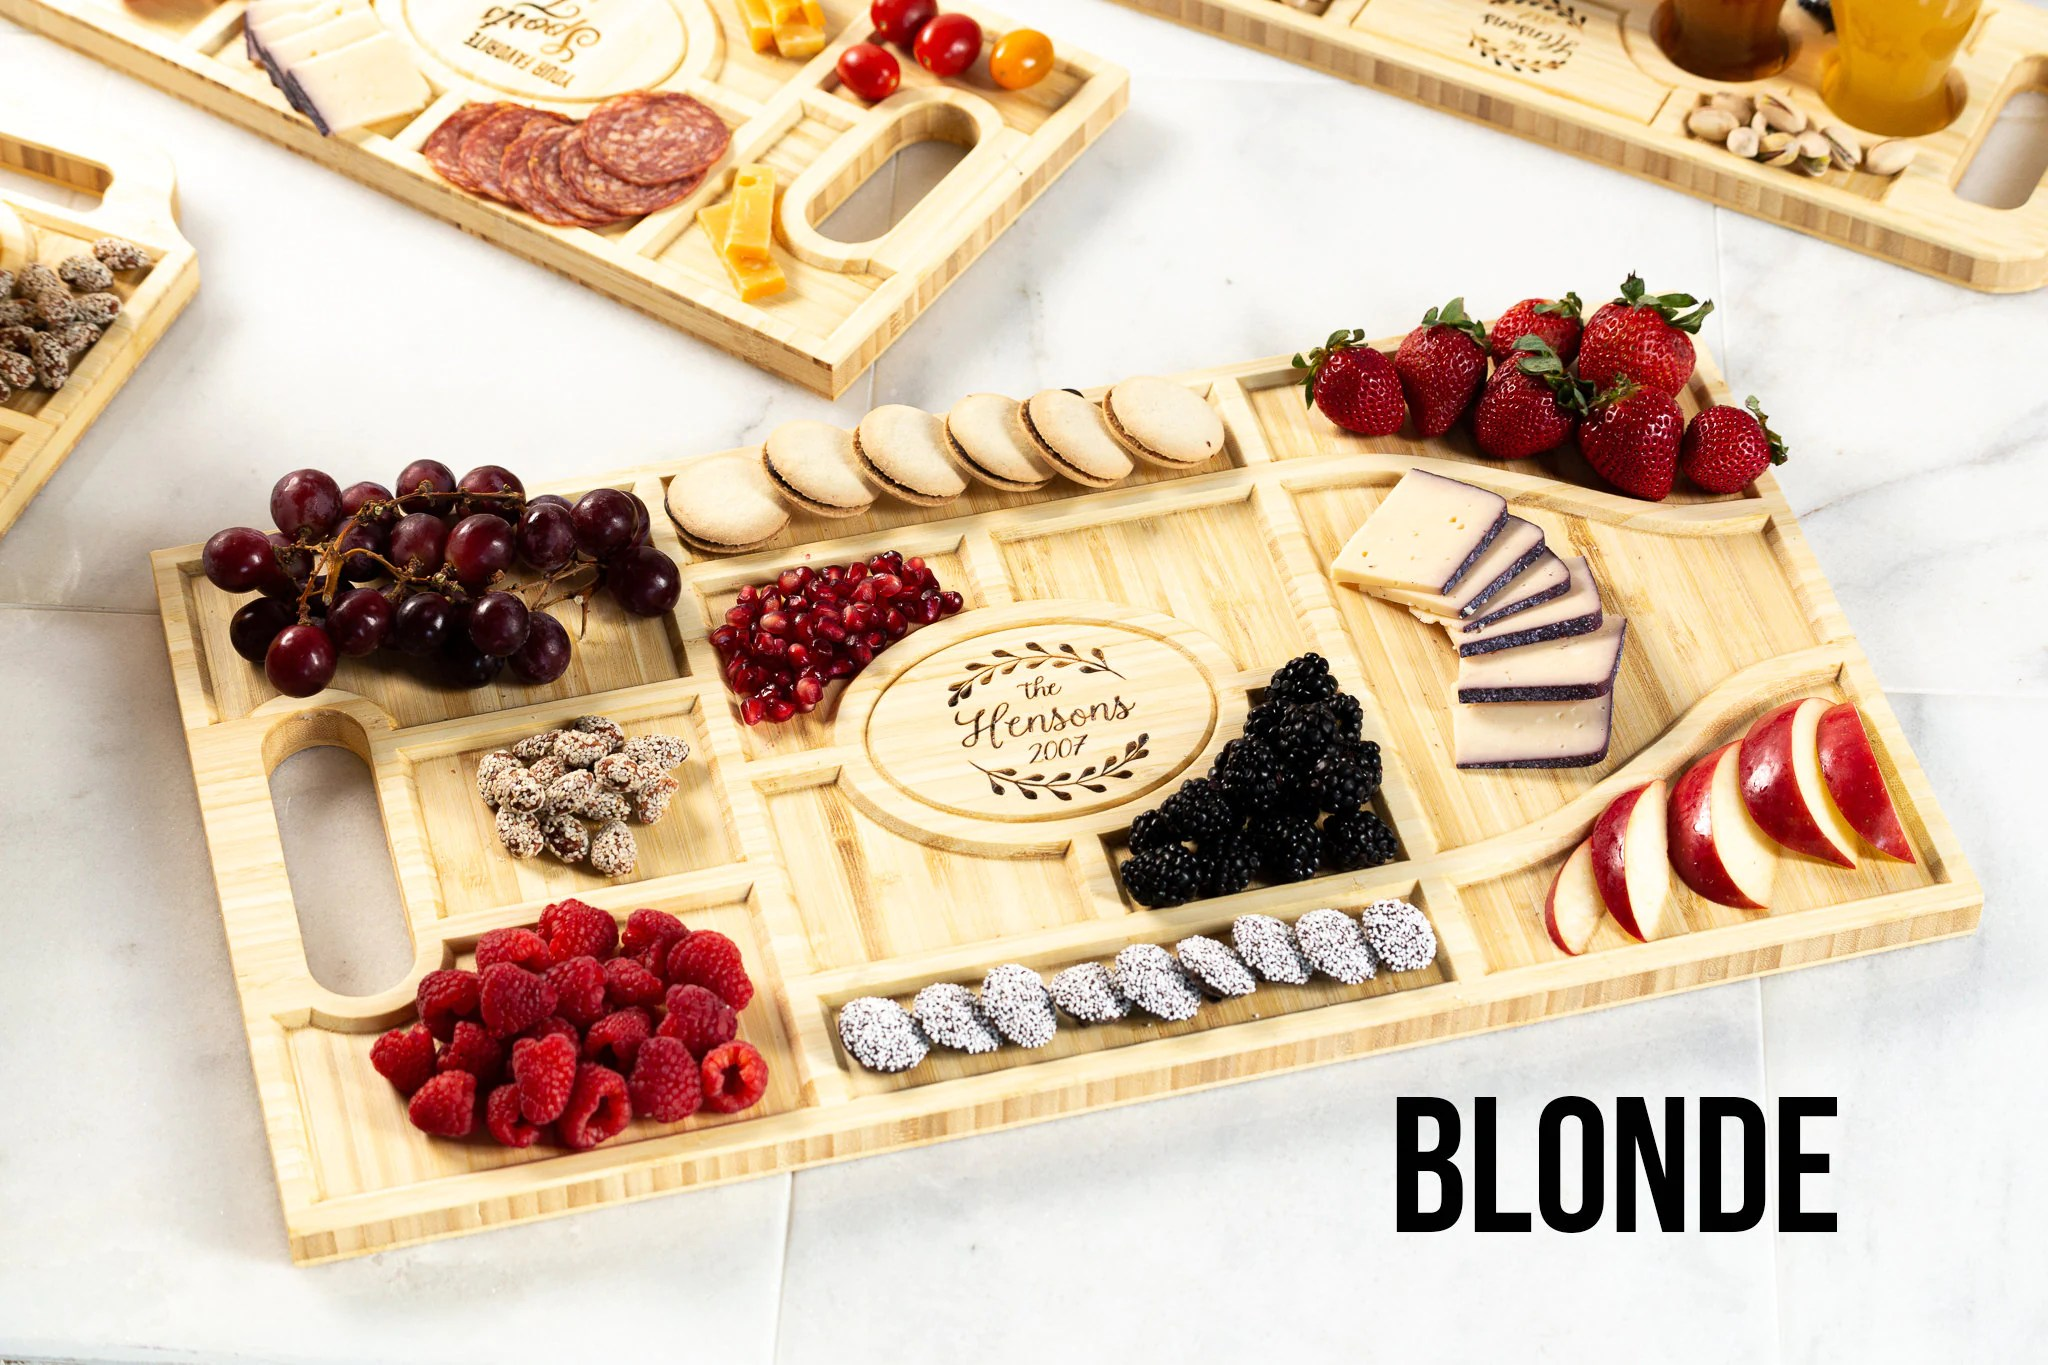 Personalized Charcuterie Planks and Beer Flights  4 Styles image 7